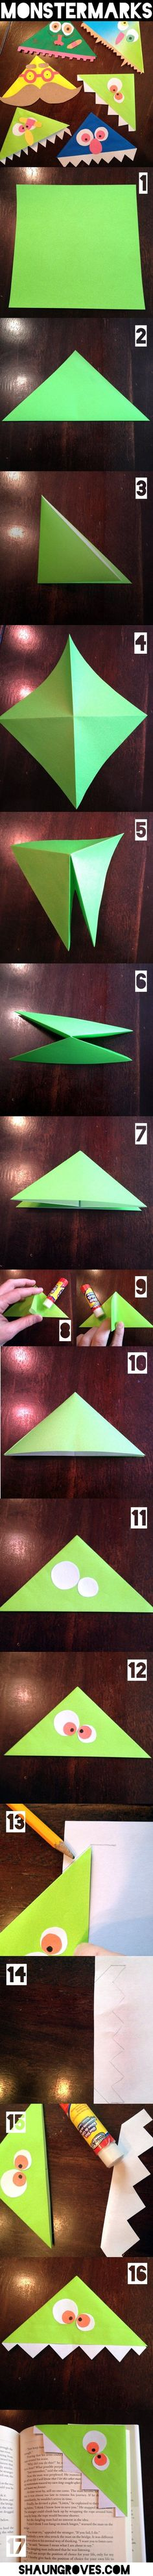 Monster Bookmarks For Kidscraft Pictures, Photos, and Images for Facebook, Tumblr, Pinterest, and Twitter